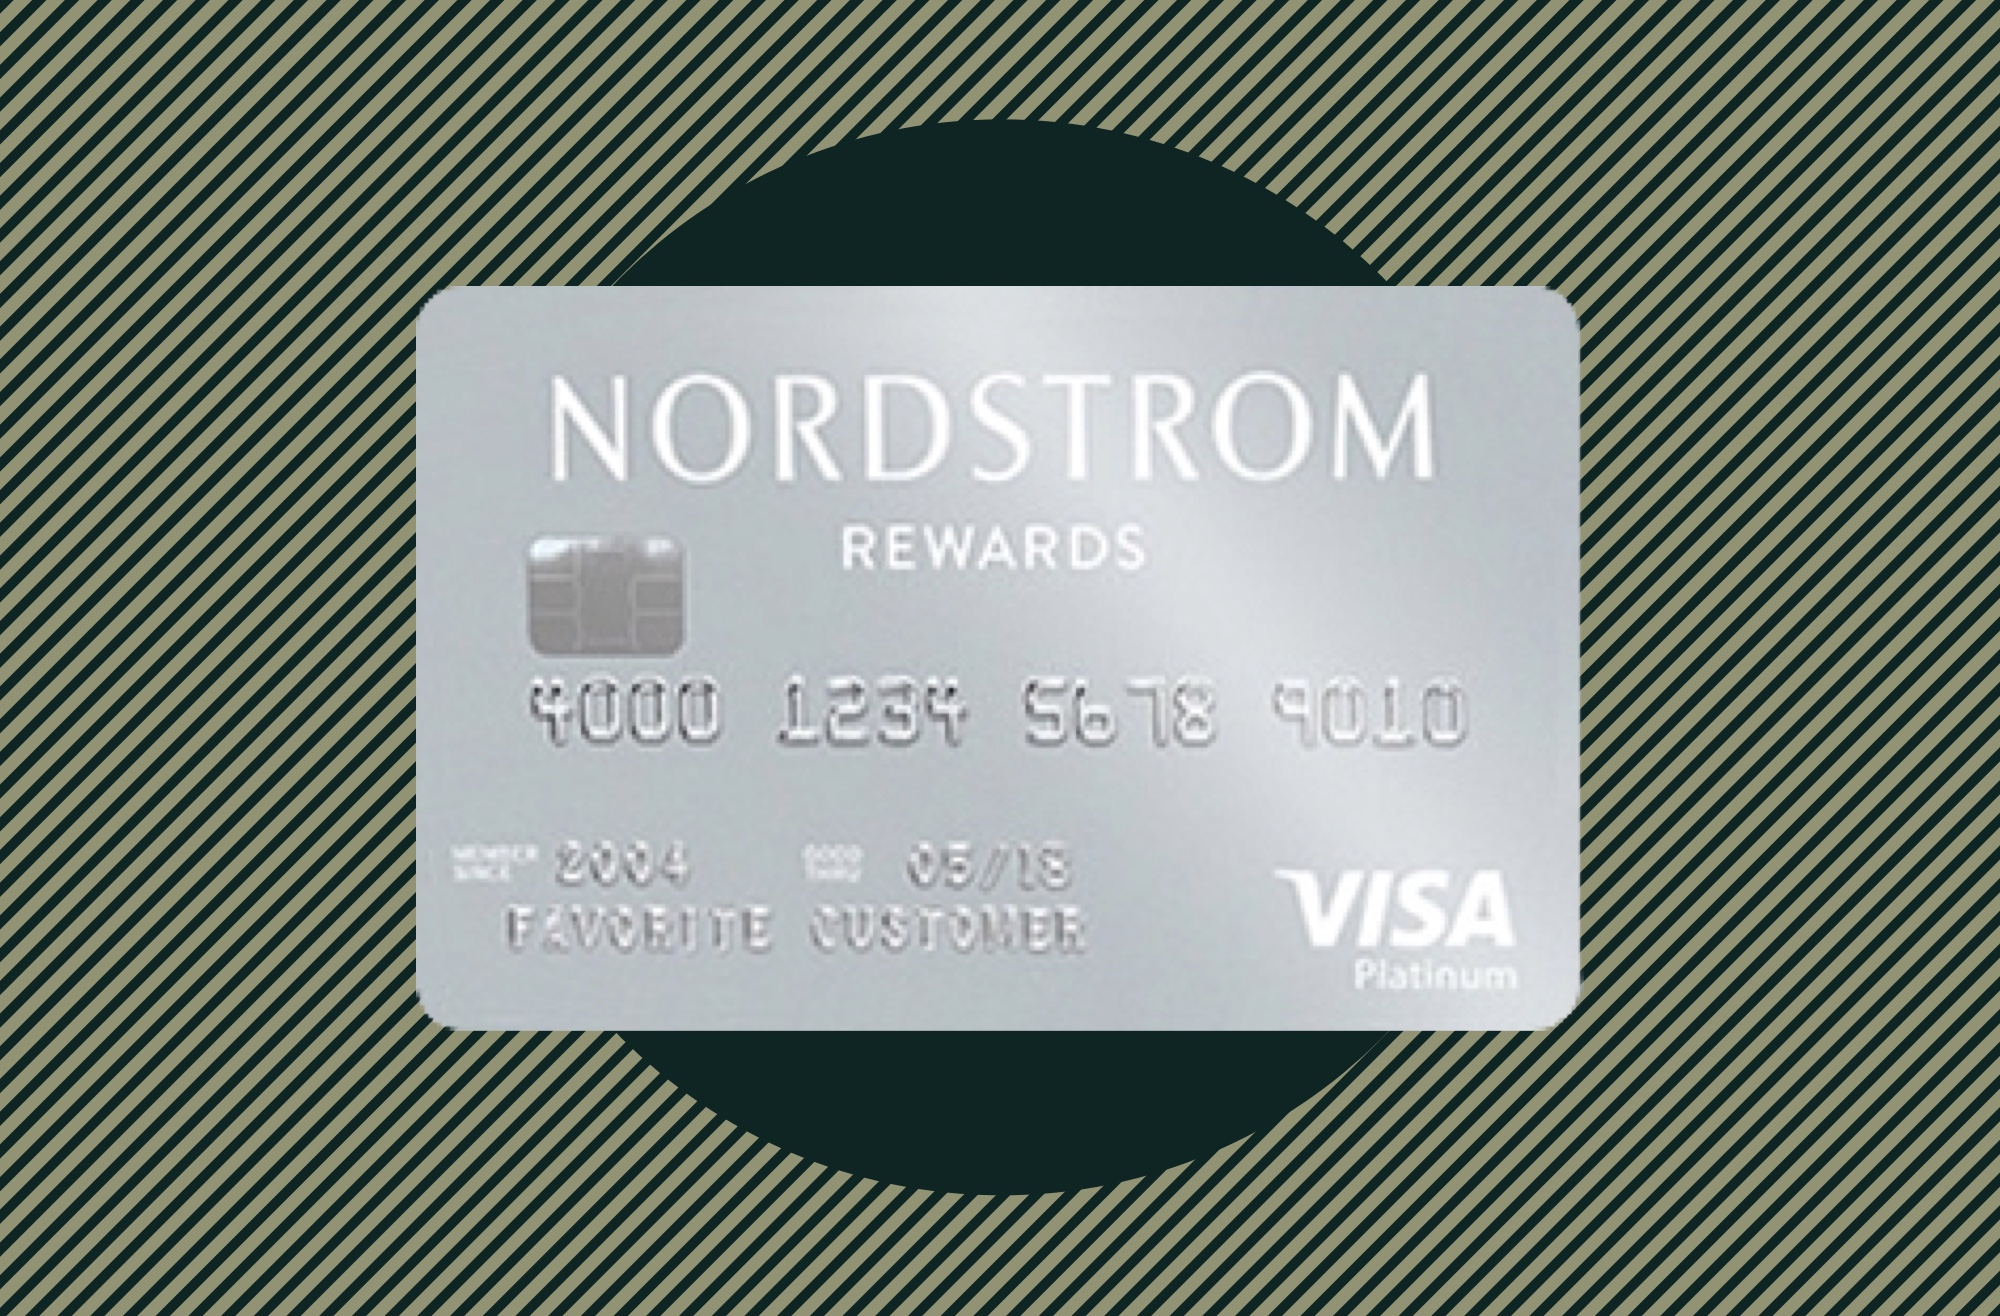 Nordstrom Visa Signature Card Review NextAdvisor with TIME